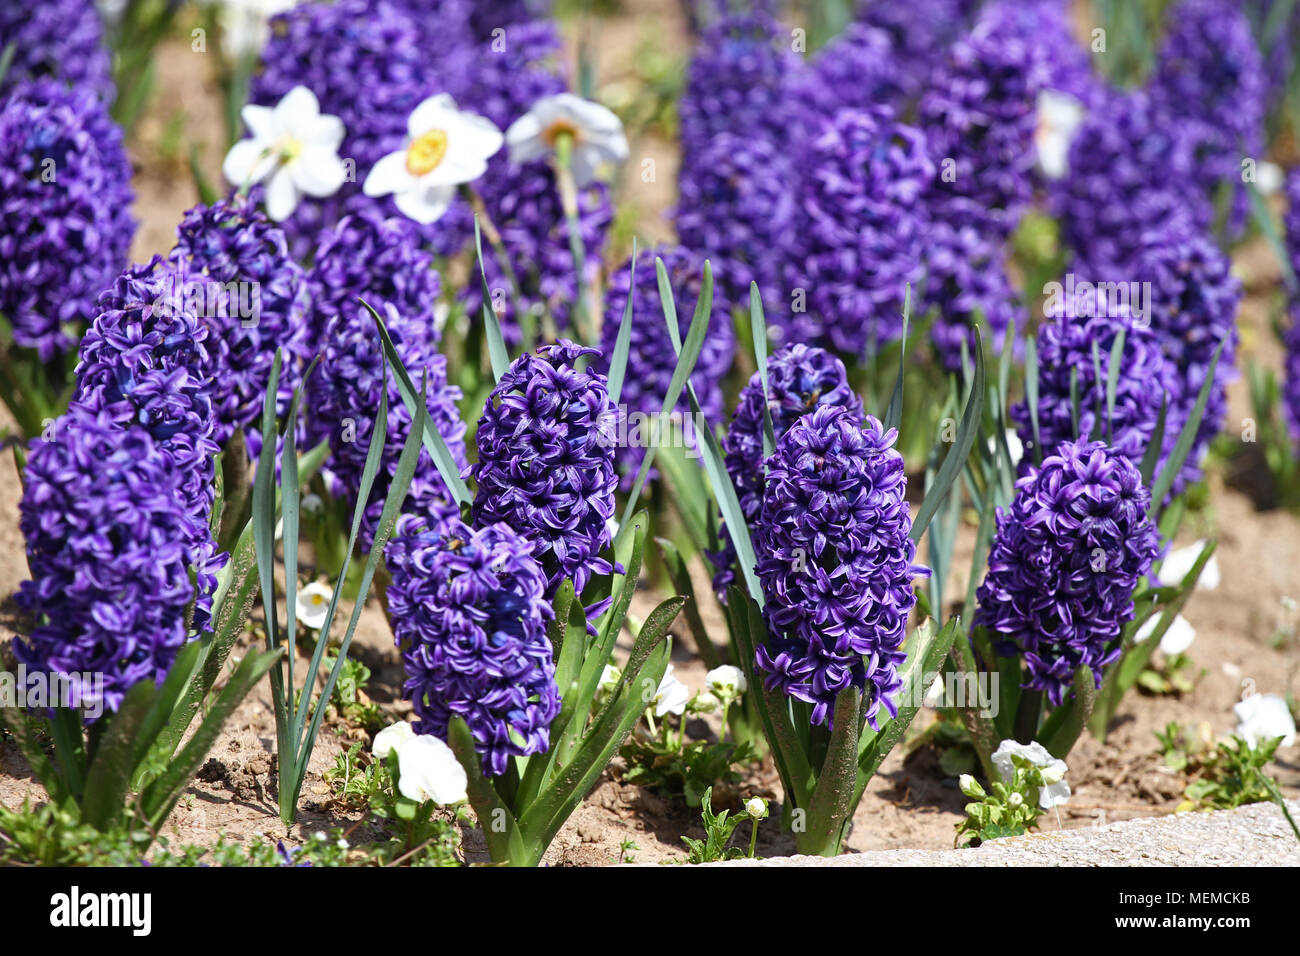 Hyacinth And Narcissus Daffodil Field Of Colorful Spring Flowers